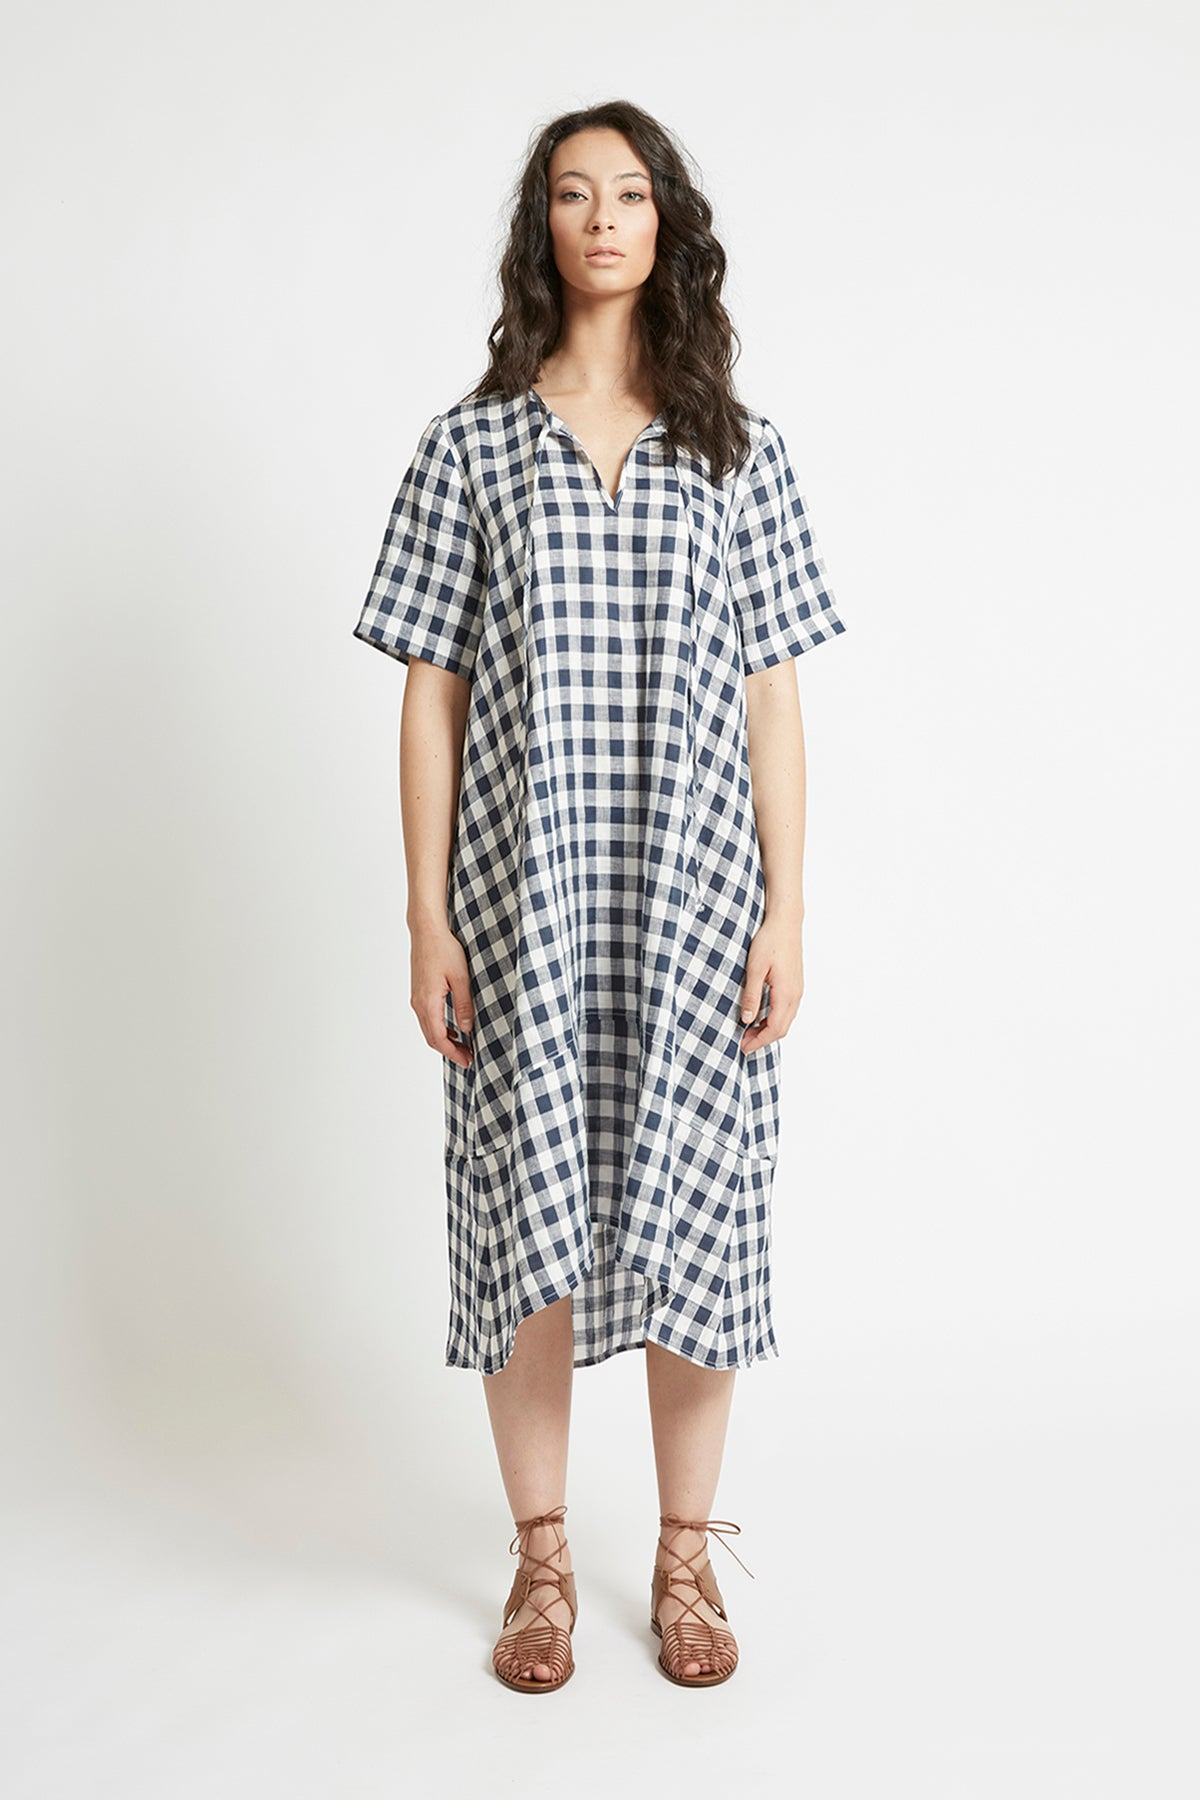 Navy Gingham Linen V-Neck Shift Dress Dresses Ethical Sustainable Vegan Organic Australian fashion womens clothes